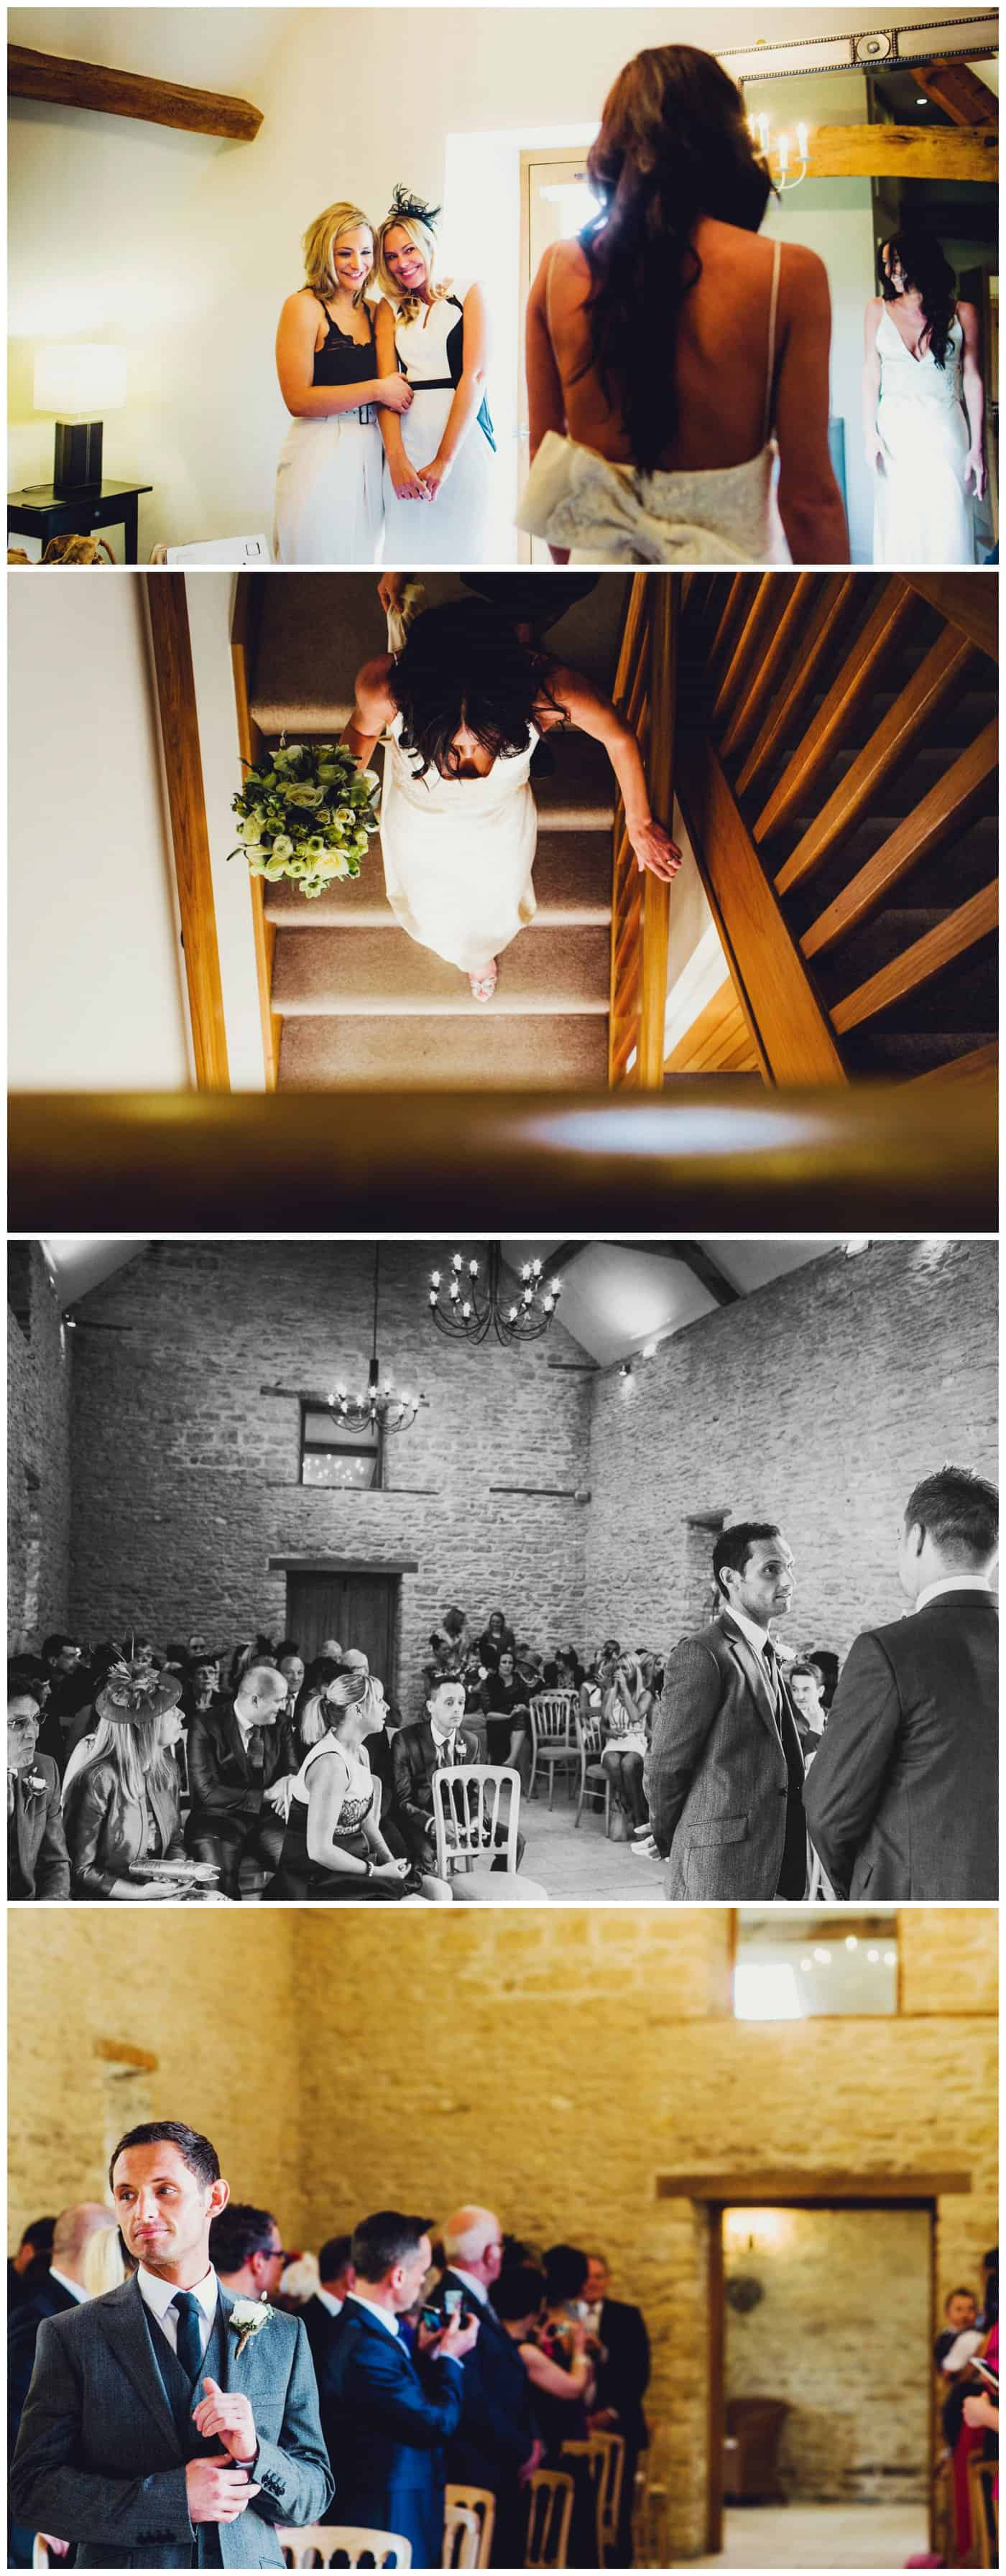 Kingscote Barn wedding photographer